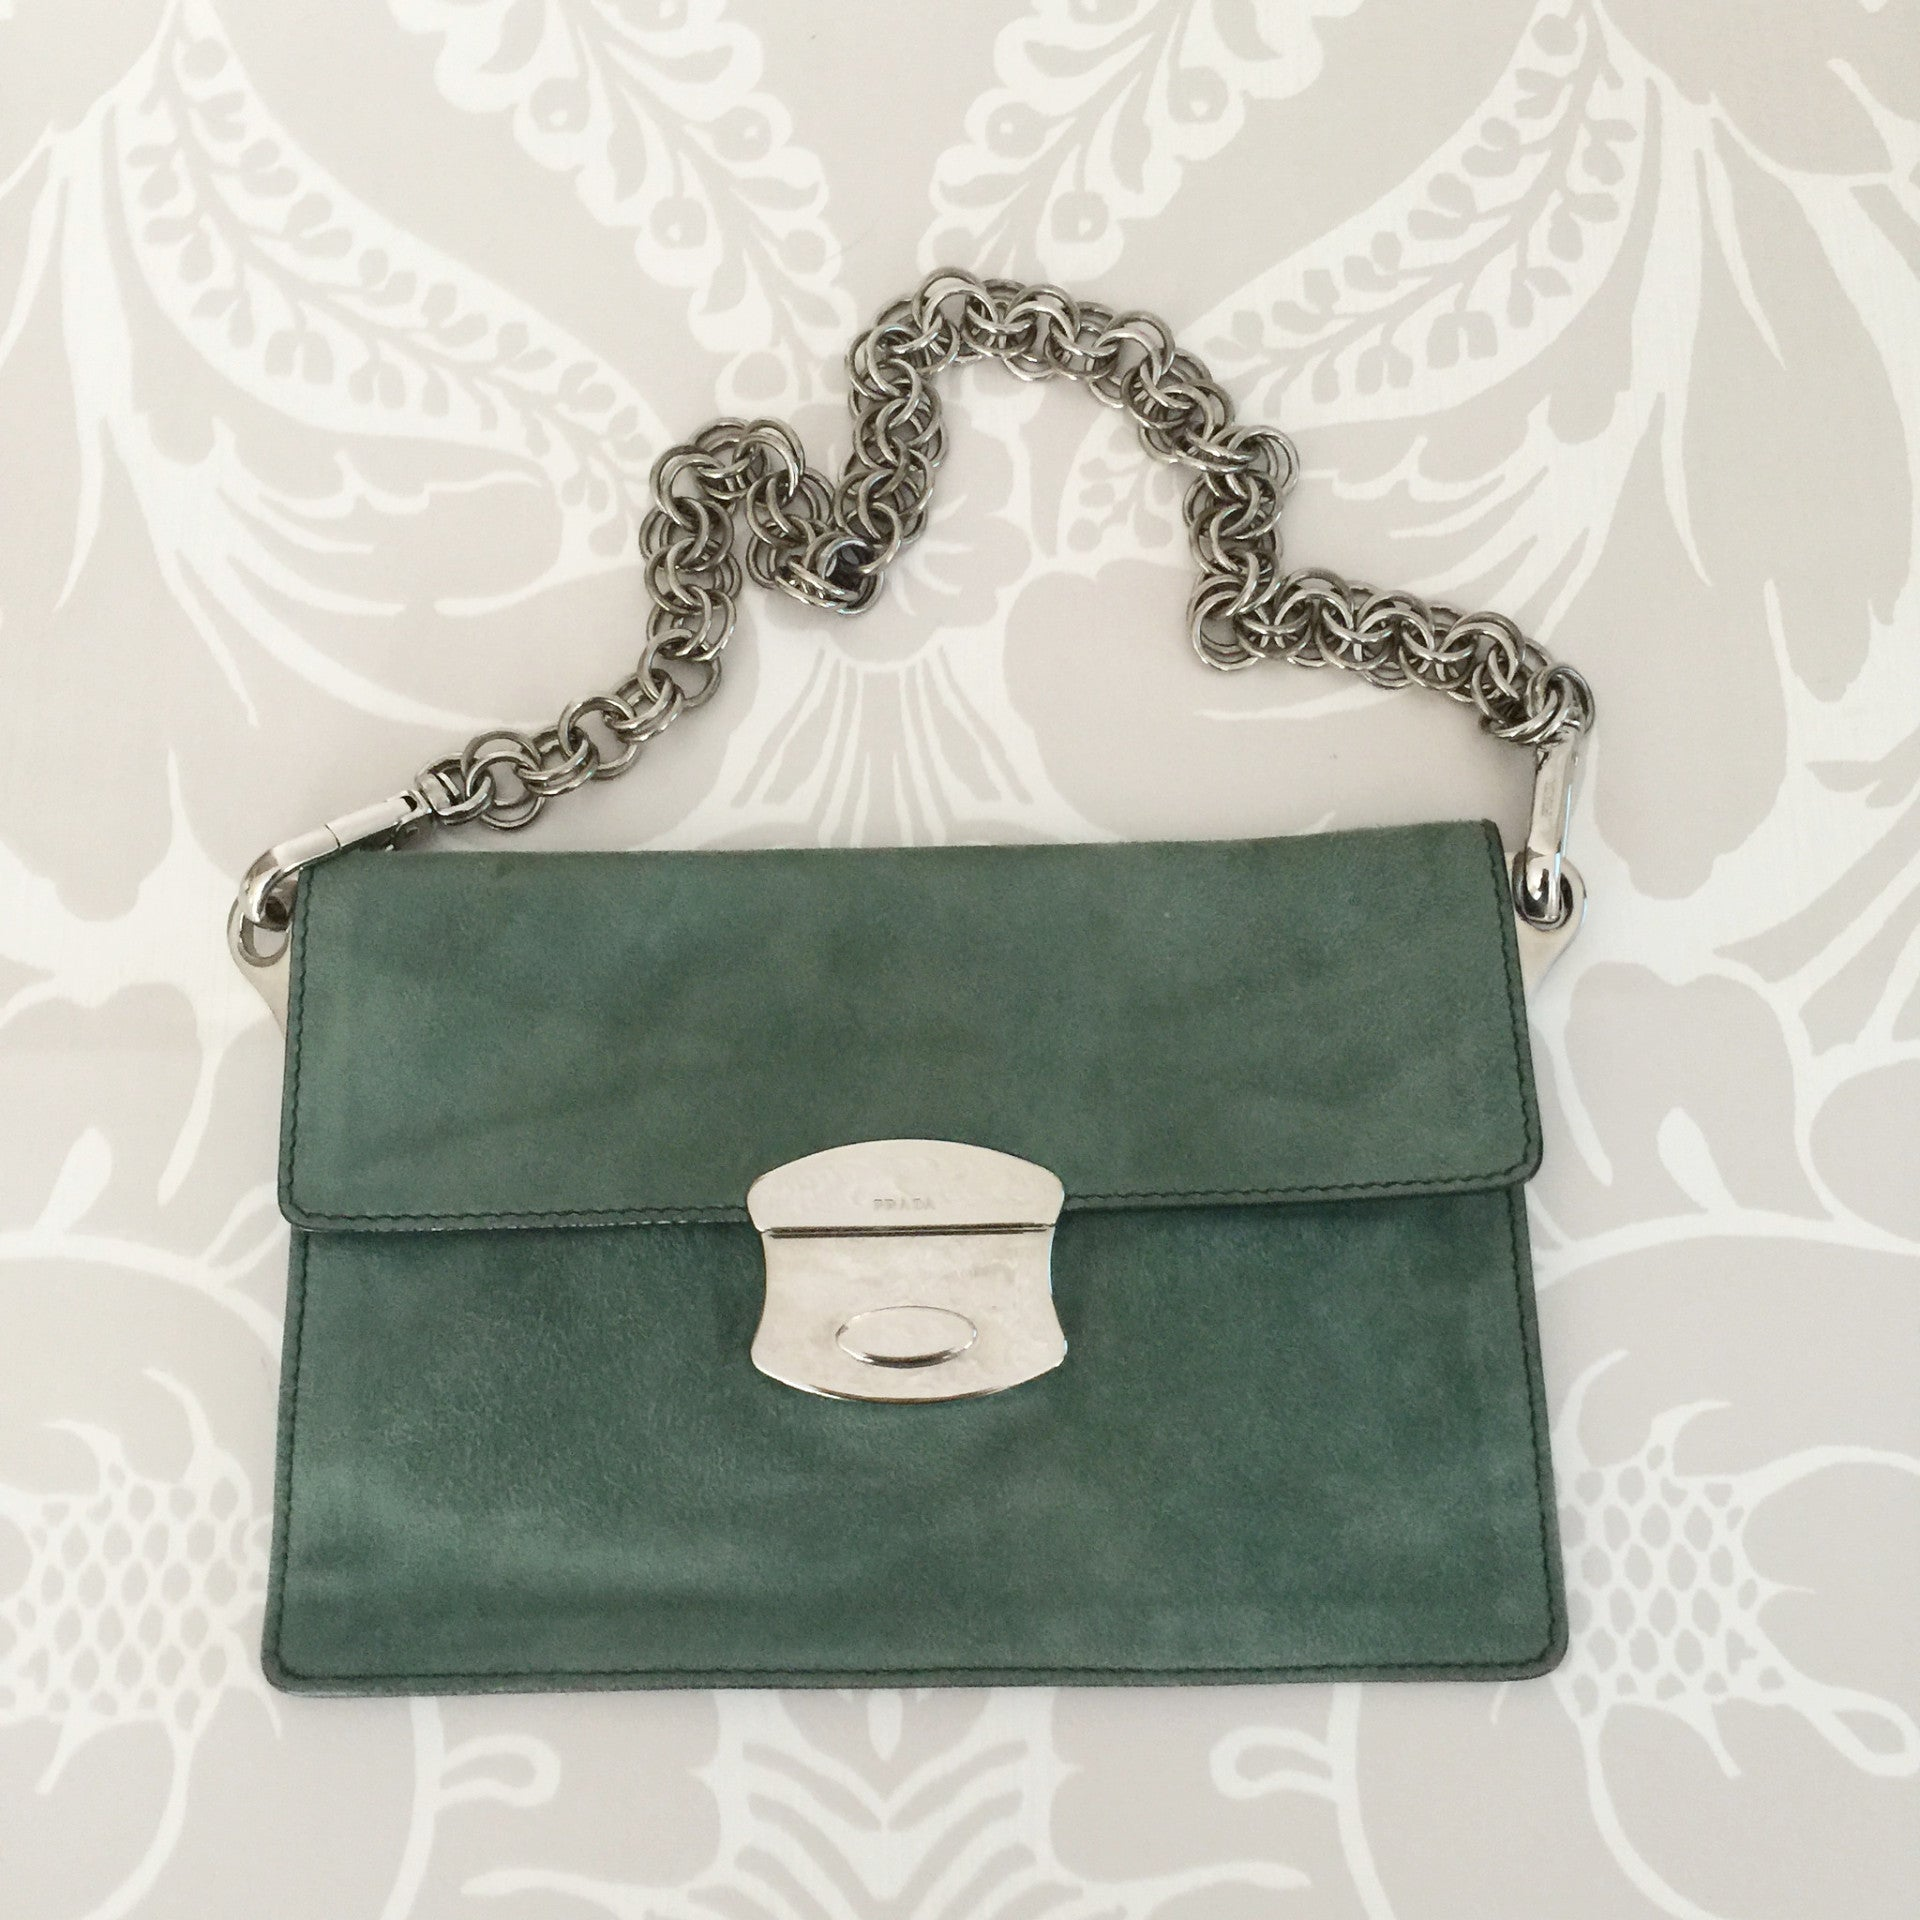 Authentic PRADA Seafoam Green Suede Chain Bag